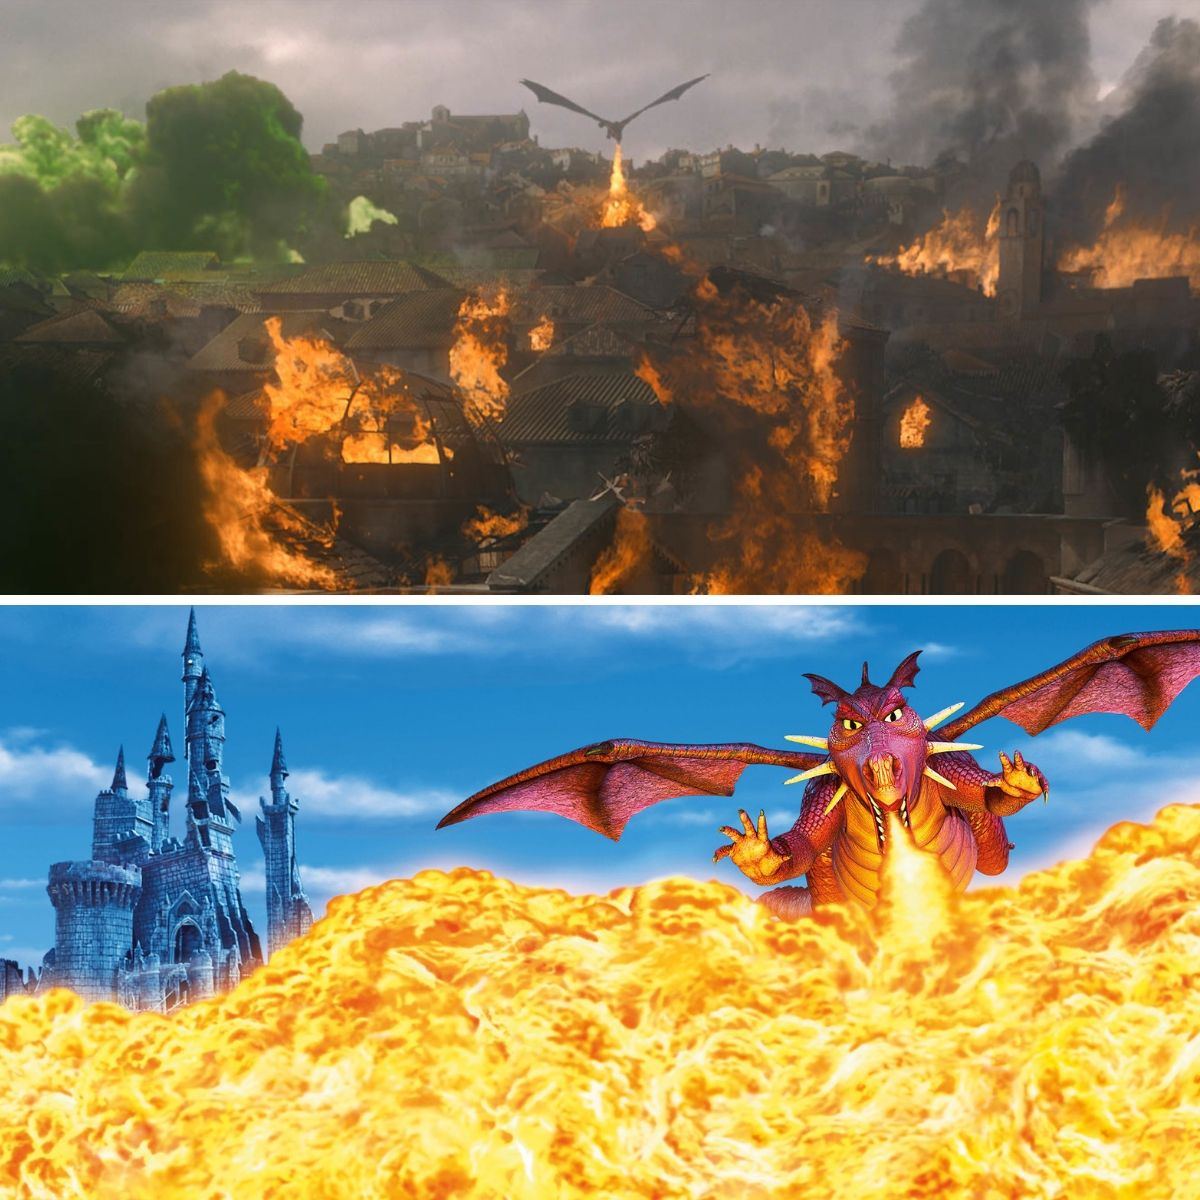 grogon and dragon lighting cities on fire